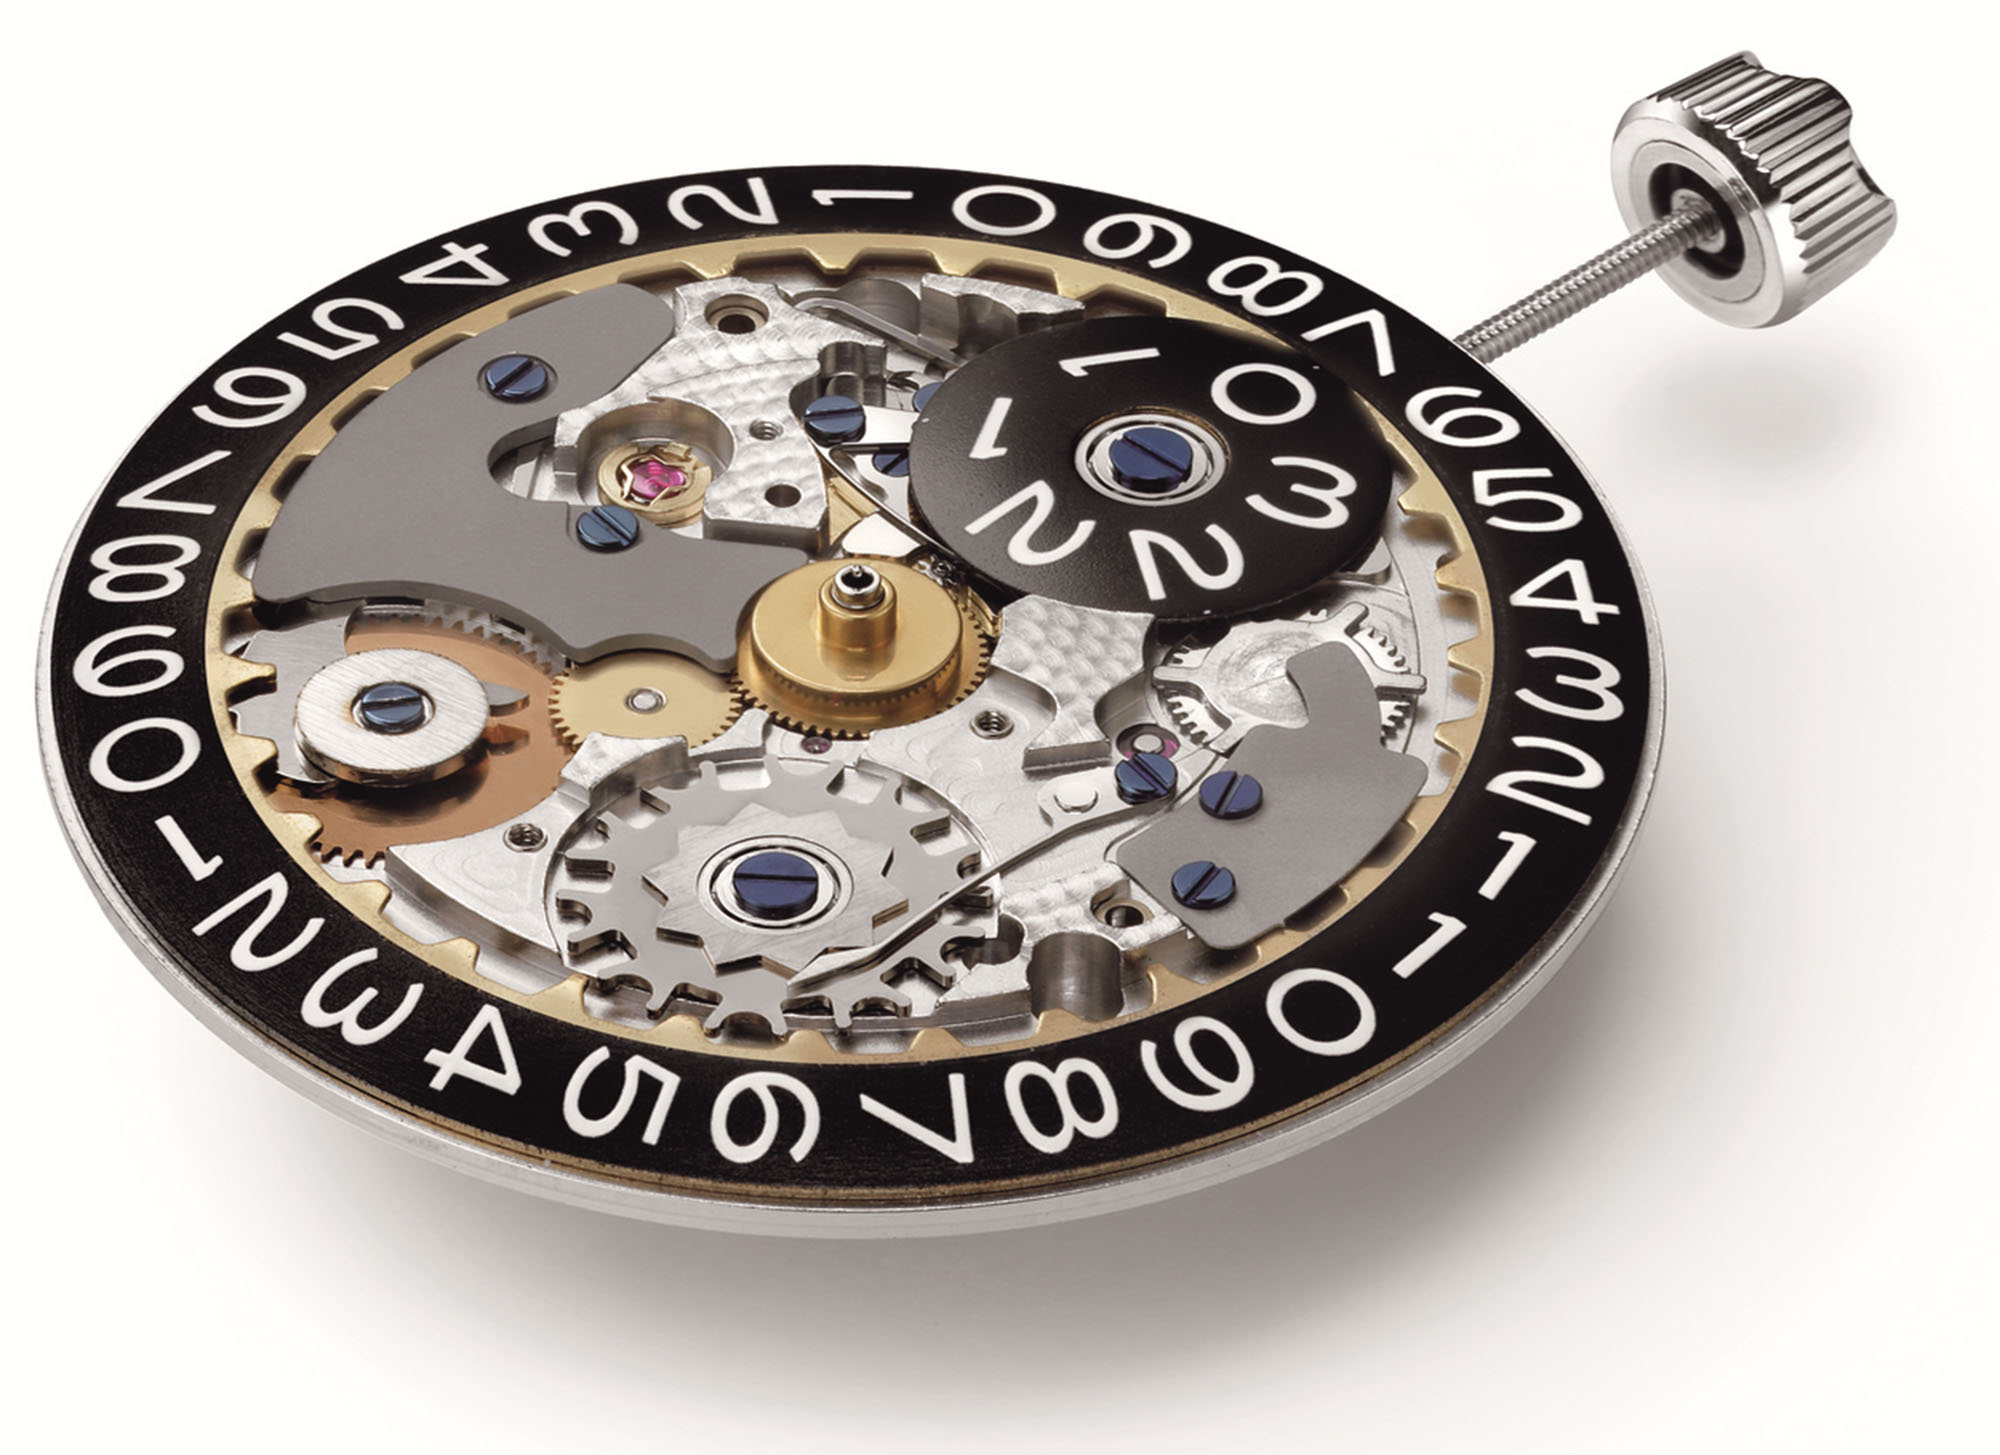 Eterna 1948 Movement